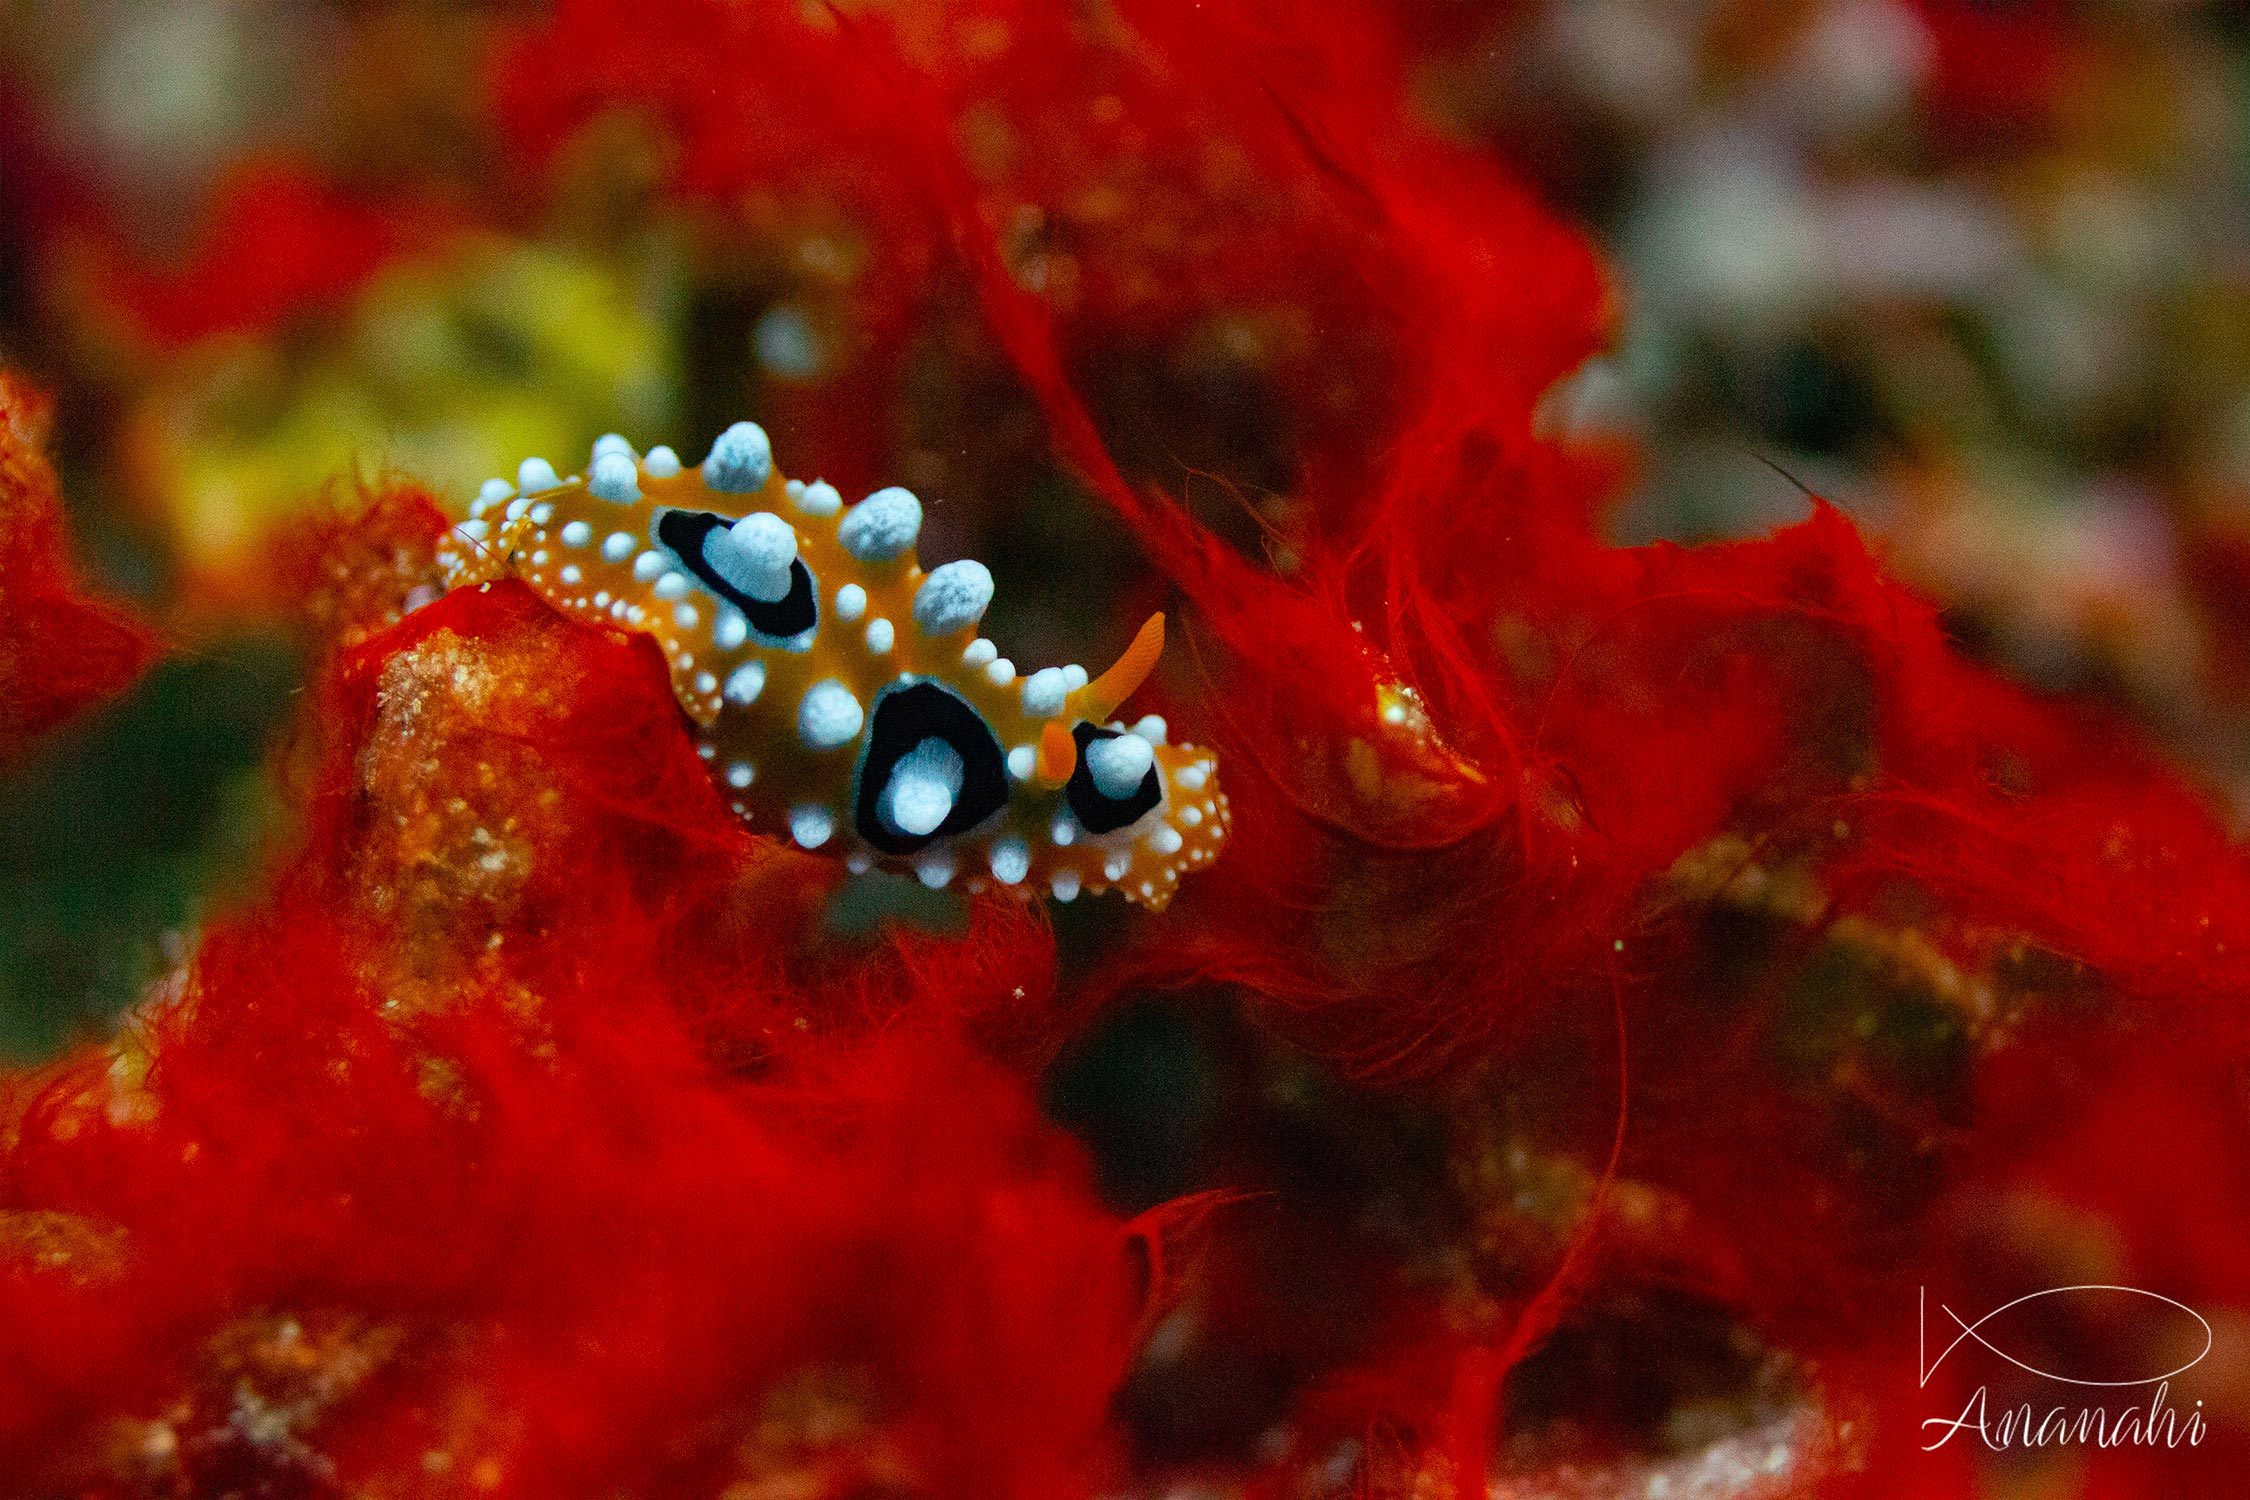 Ocellated phyllidia of Raja Ampat